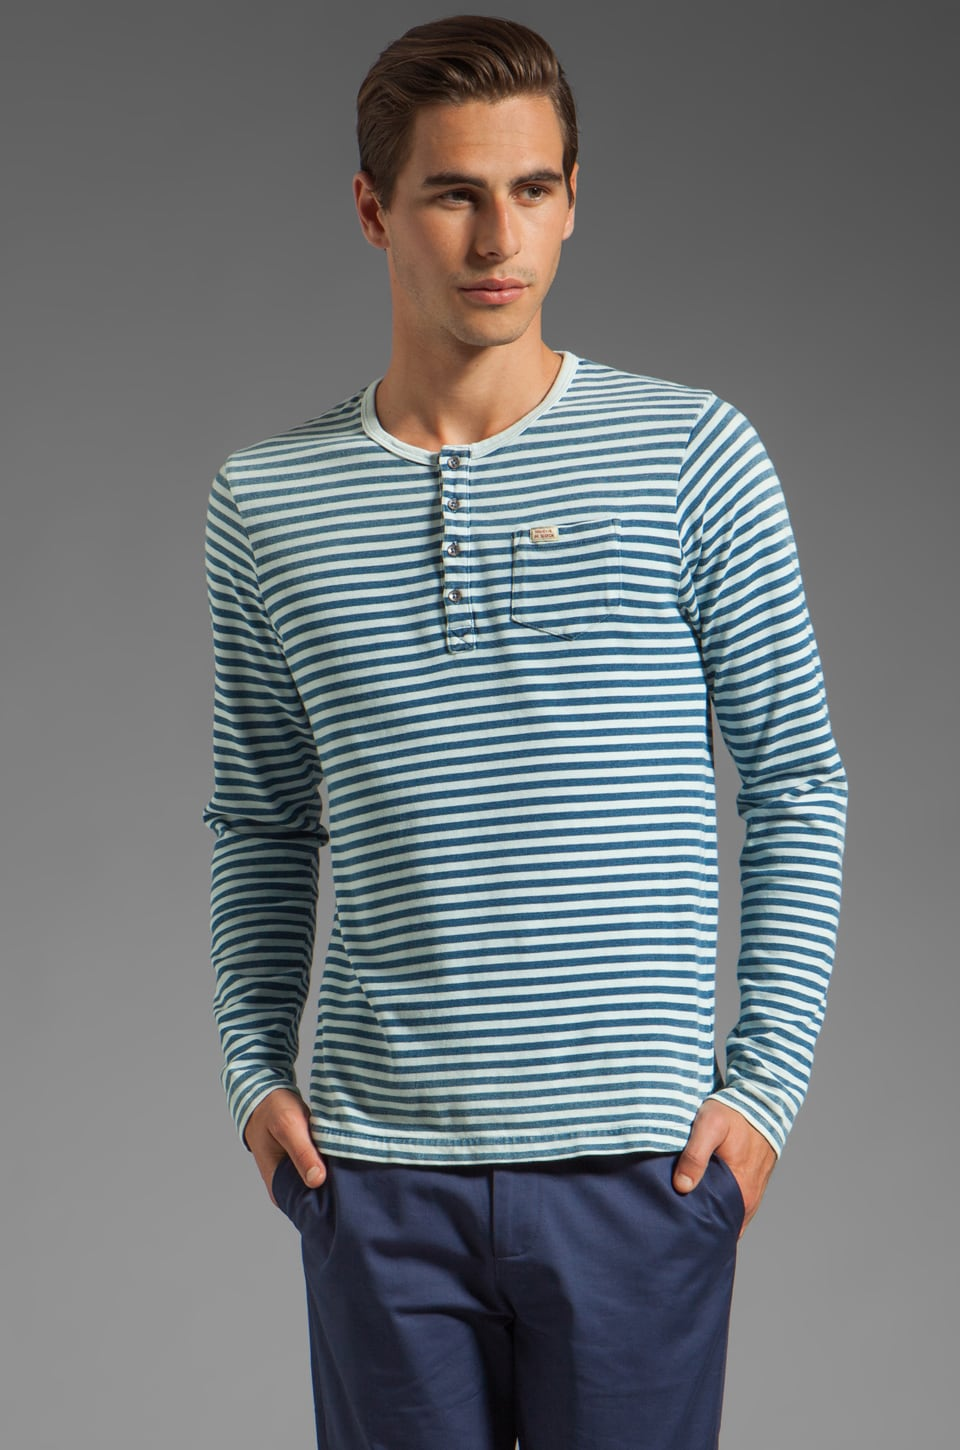 Scotch & Soda Stripe Long Sleeve Henley in Blue/White